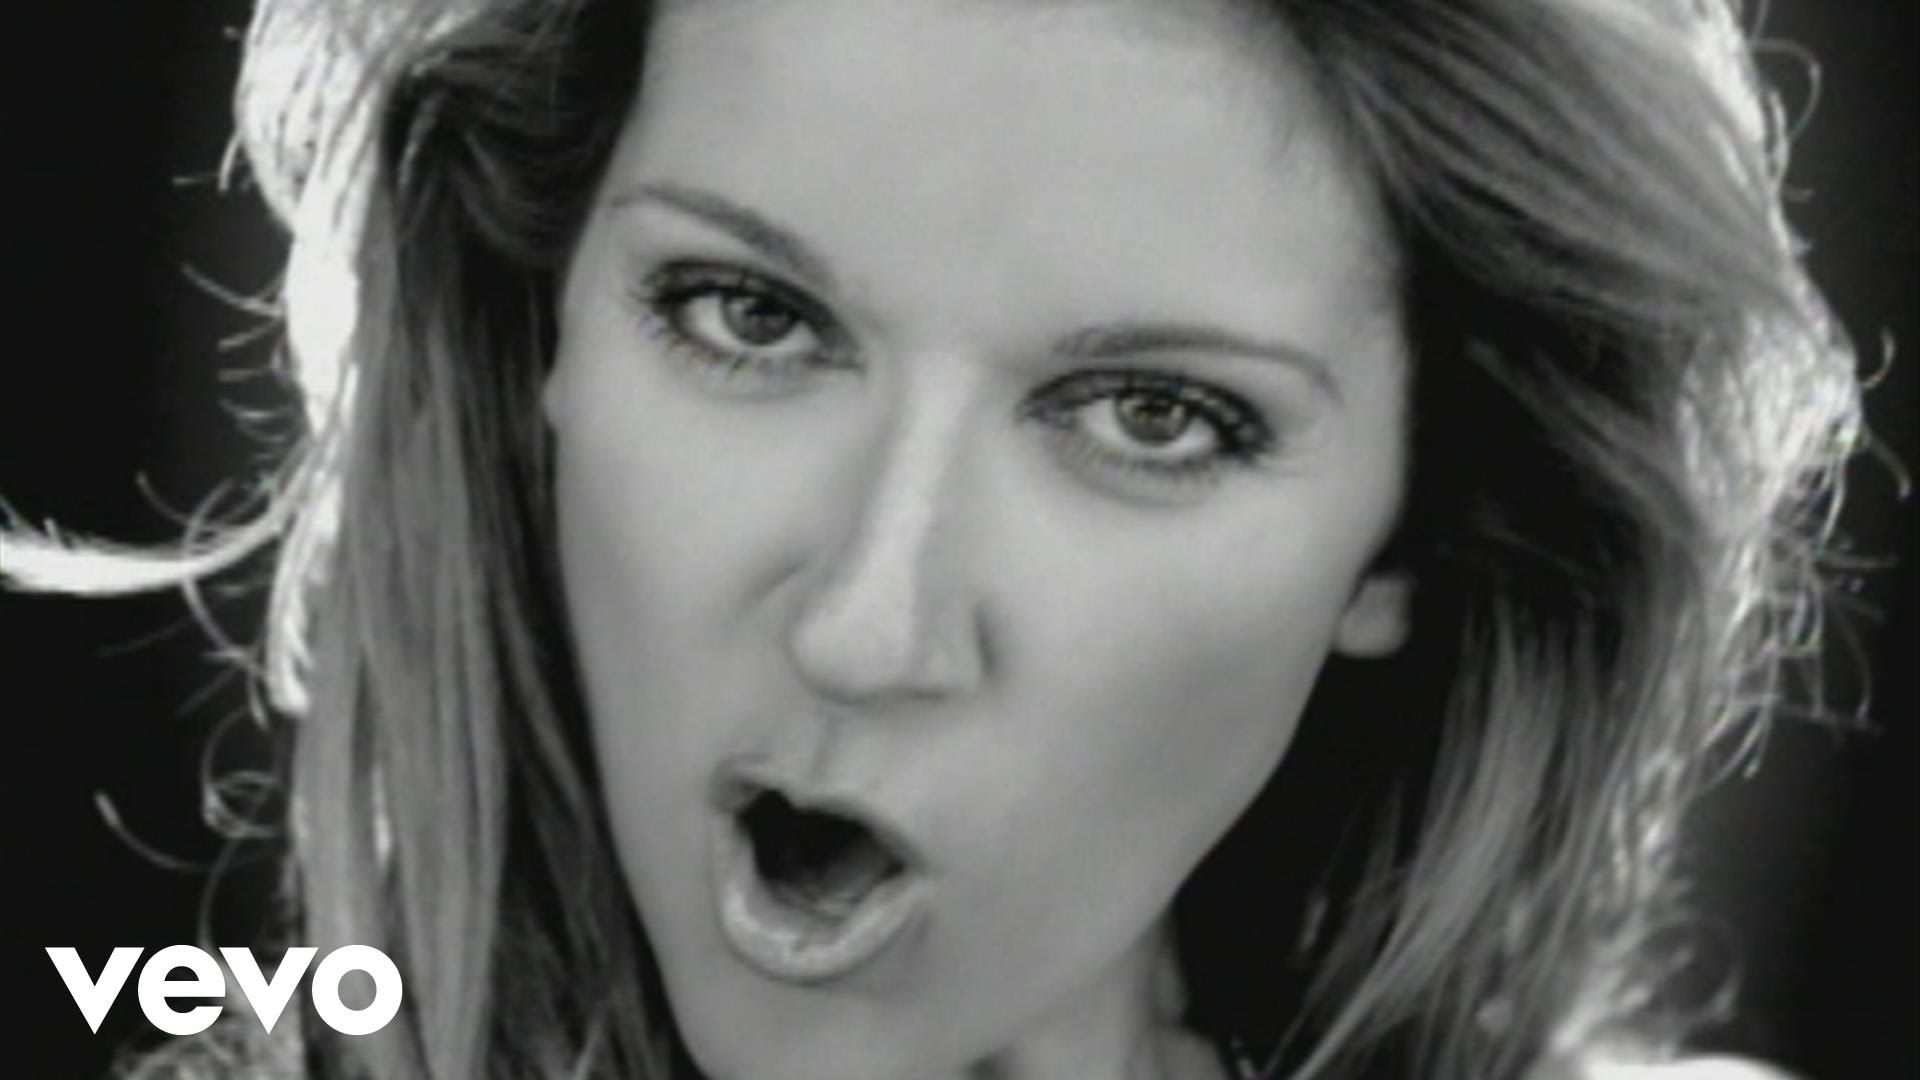 Celine Dion I Drove All Night Official Video Celine Dion Celine Dion Videos Drive All Night